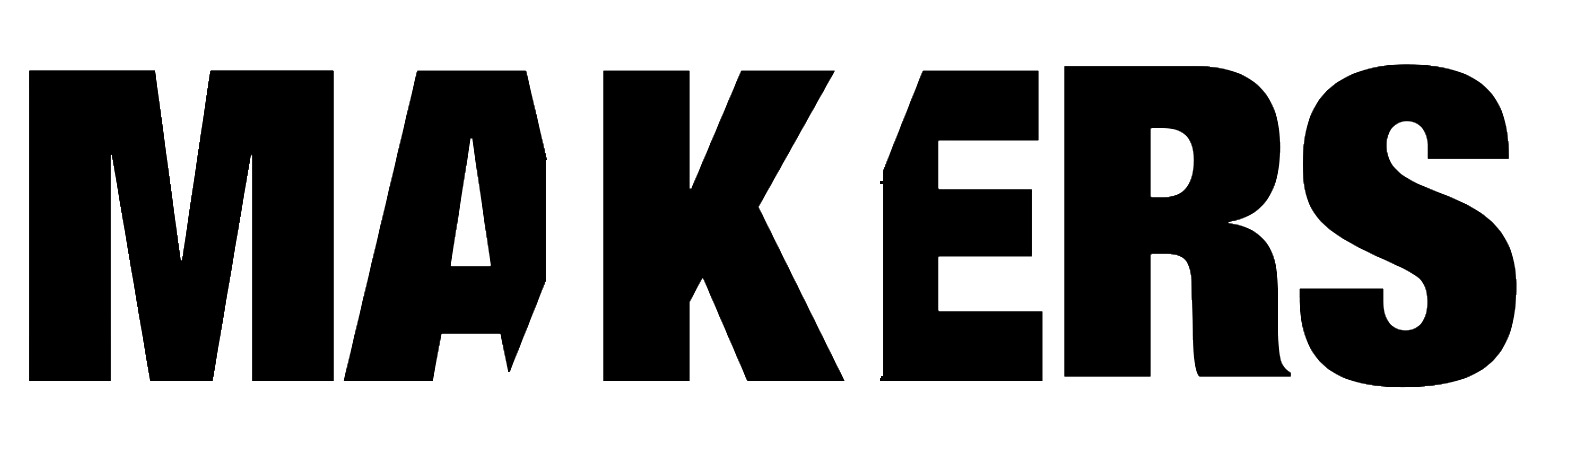 makers_logo_0.jpg